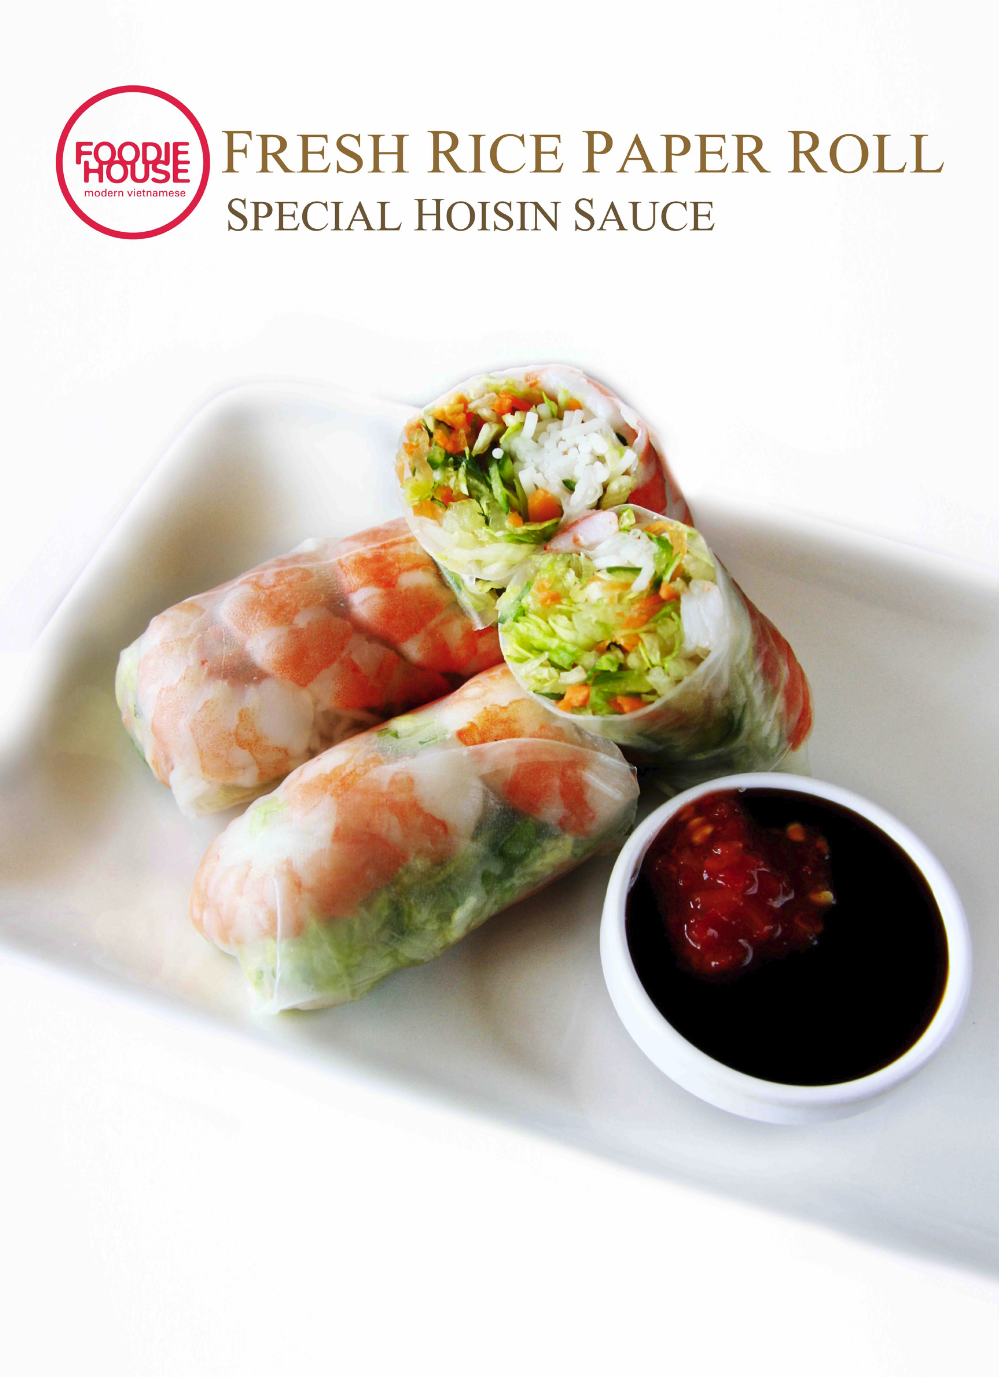 Prawn Rice Paper Roll